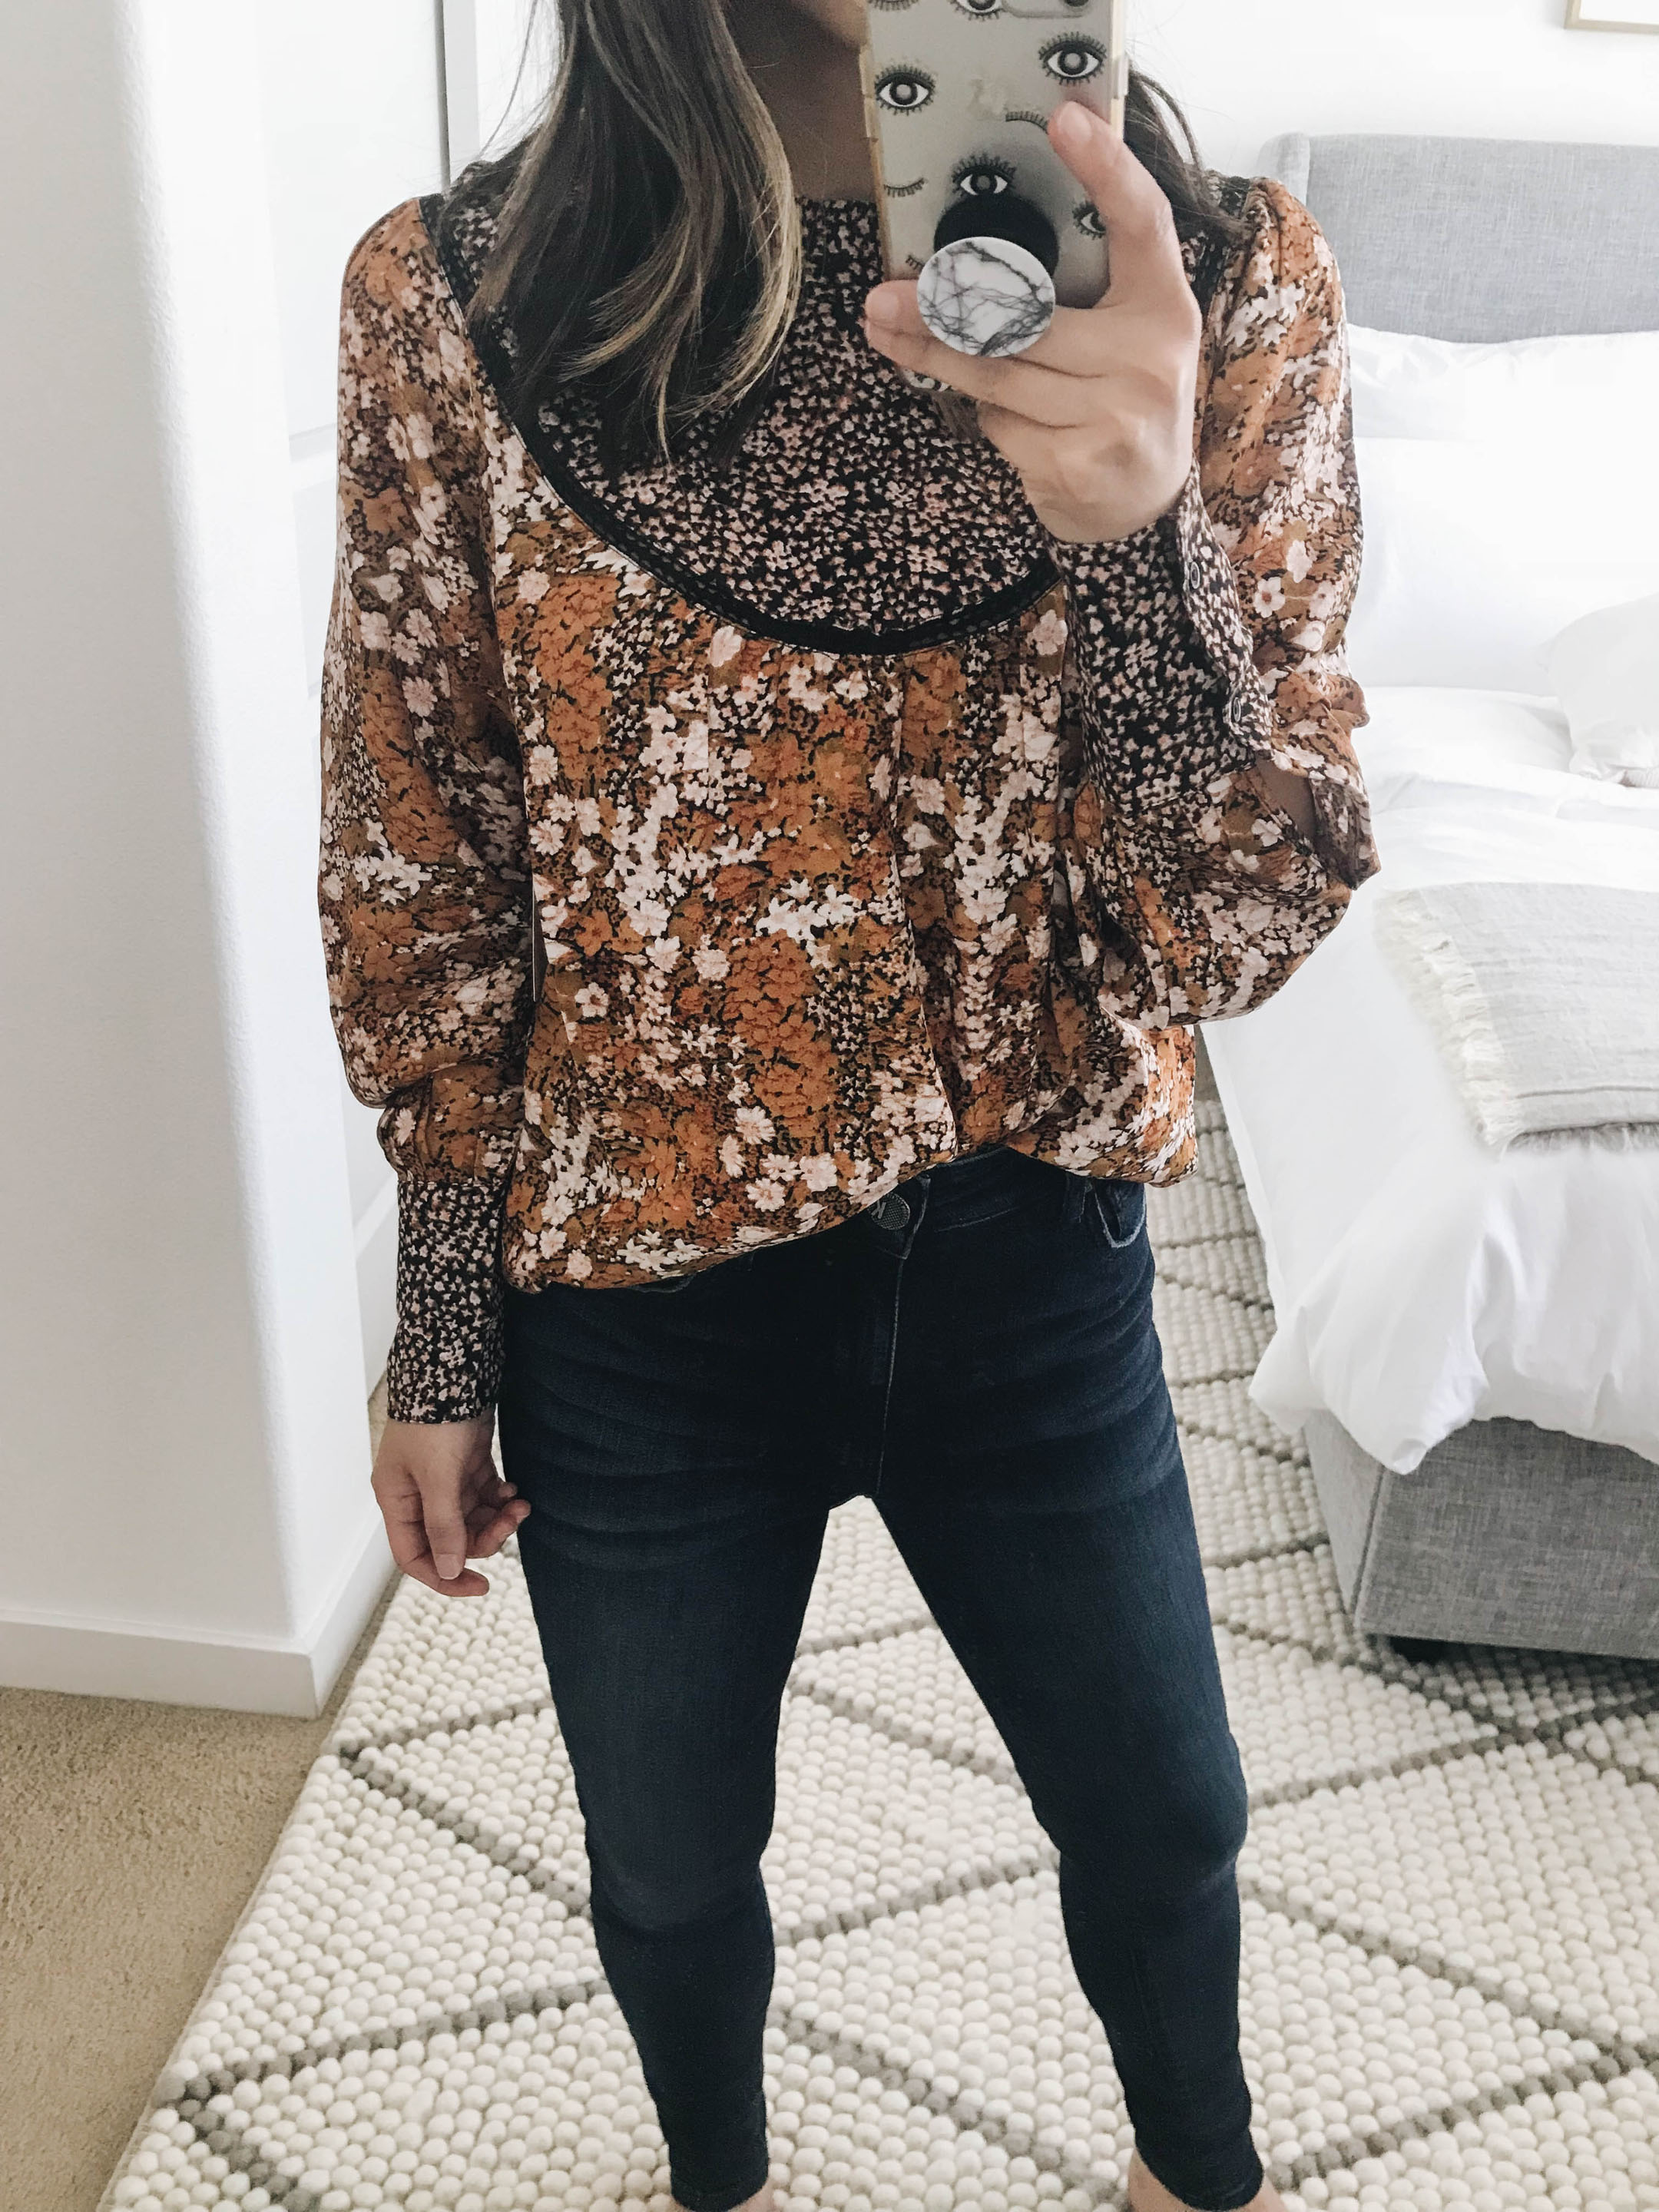 Hinge mix print top